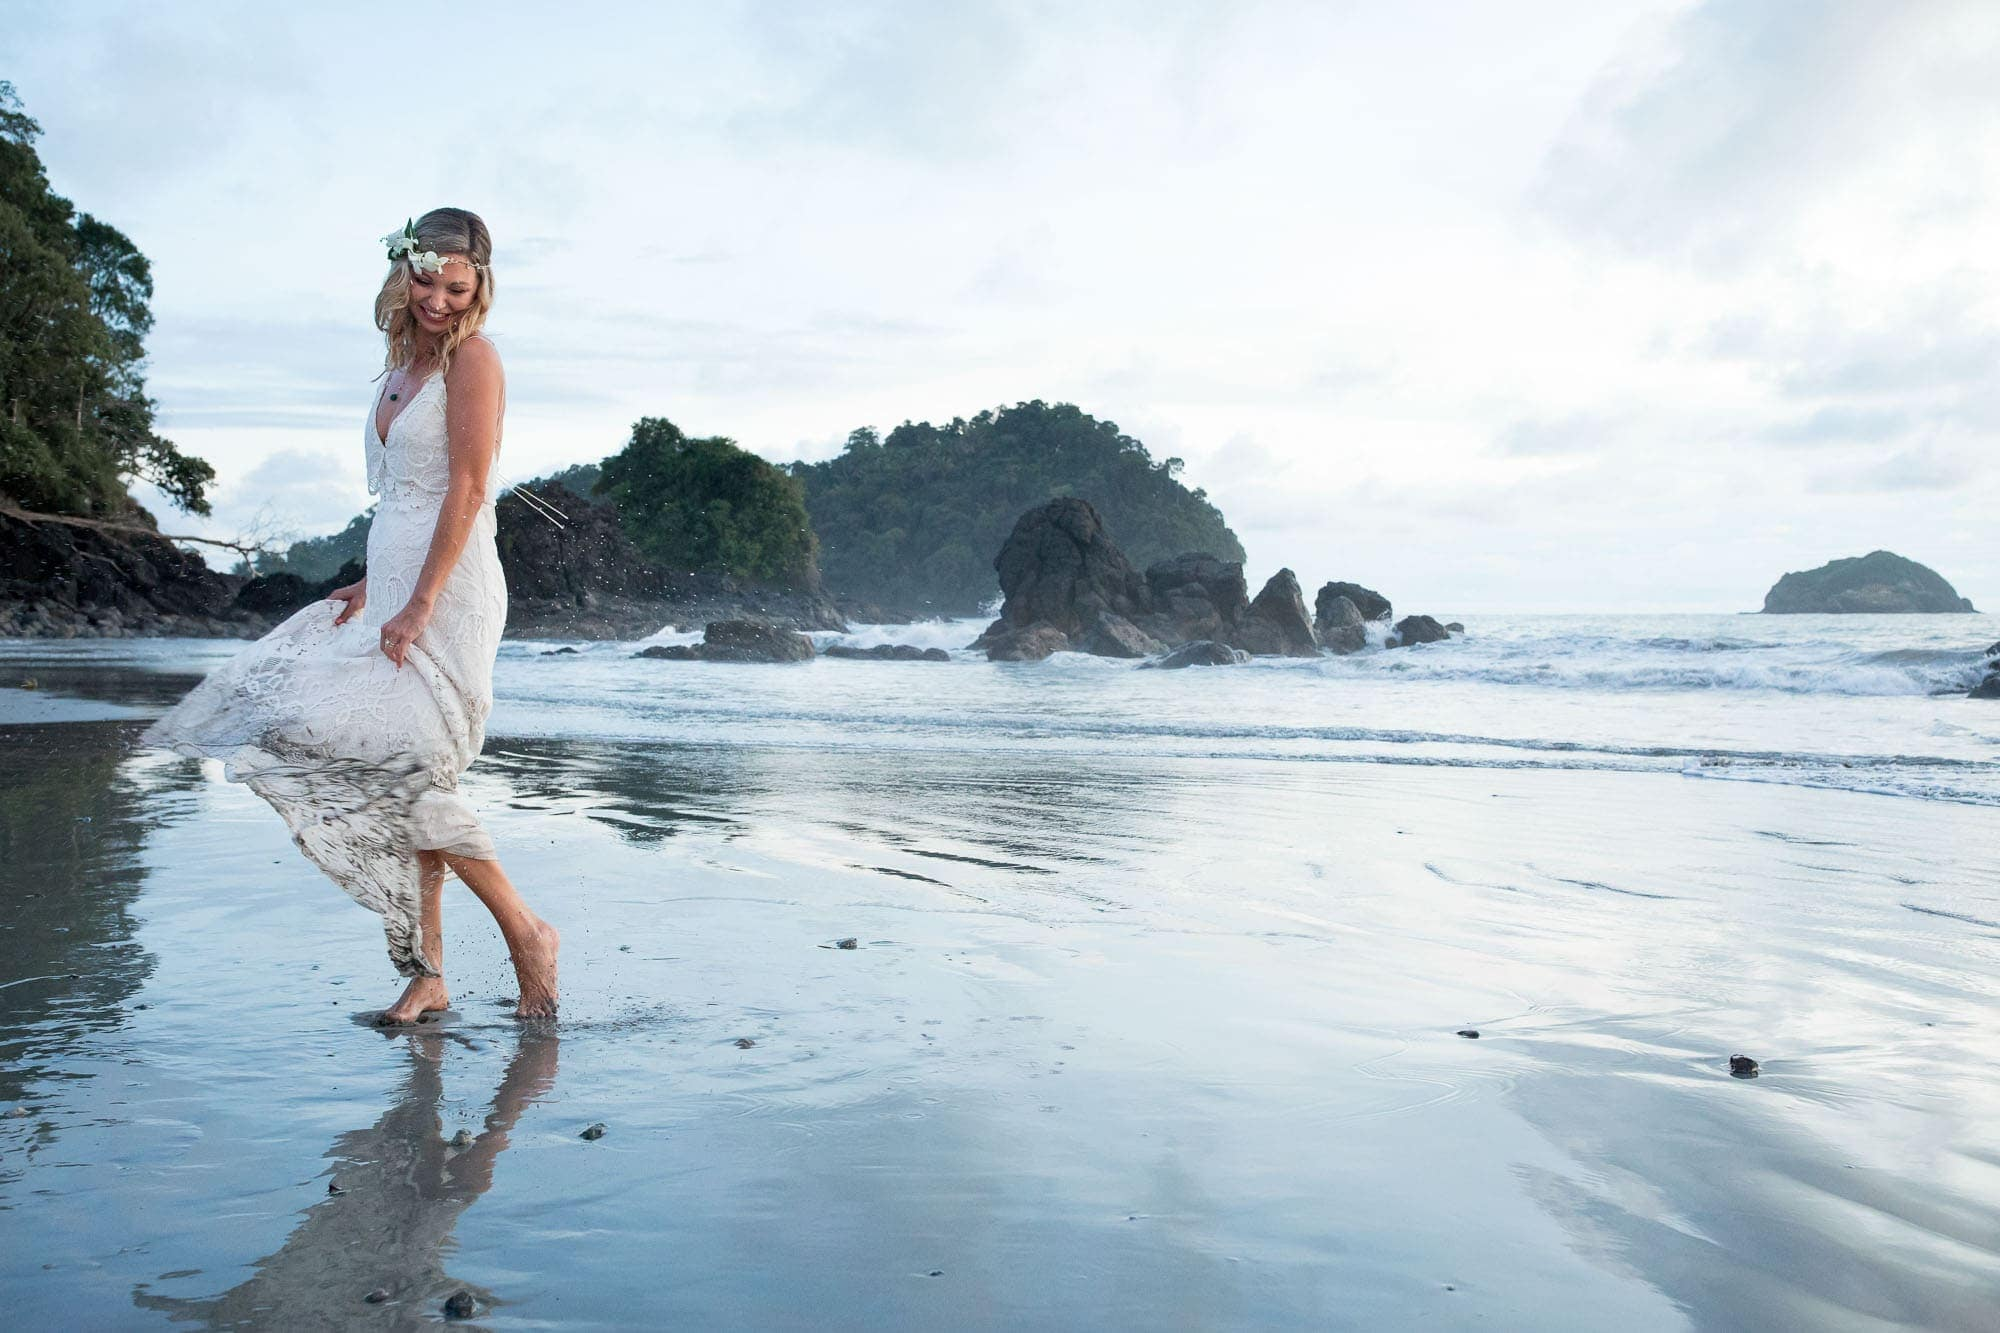 The bride playing on the beach